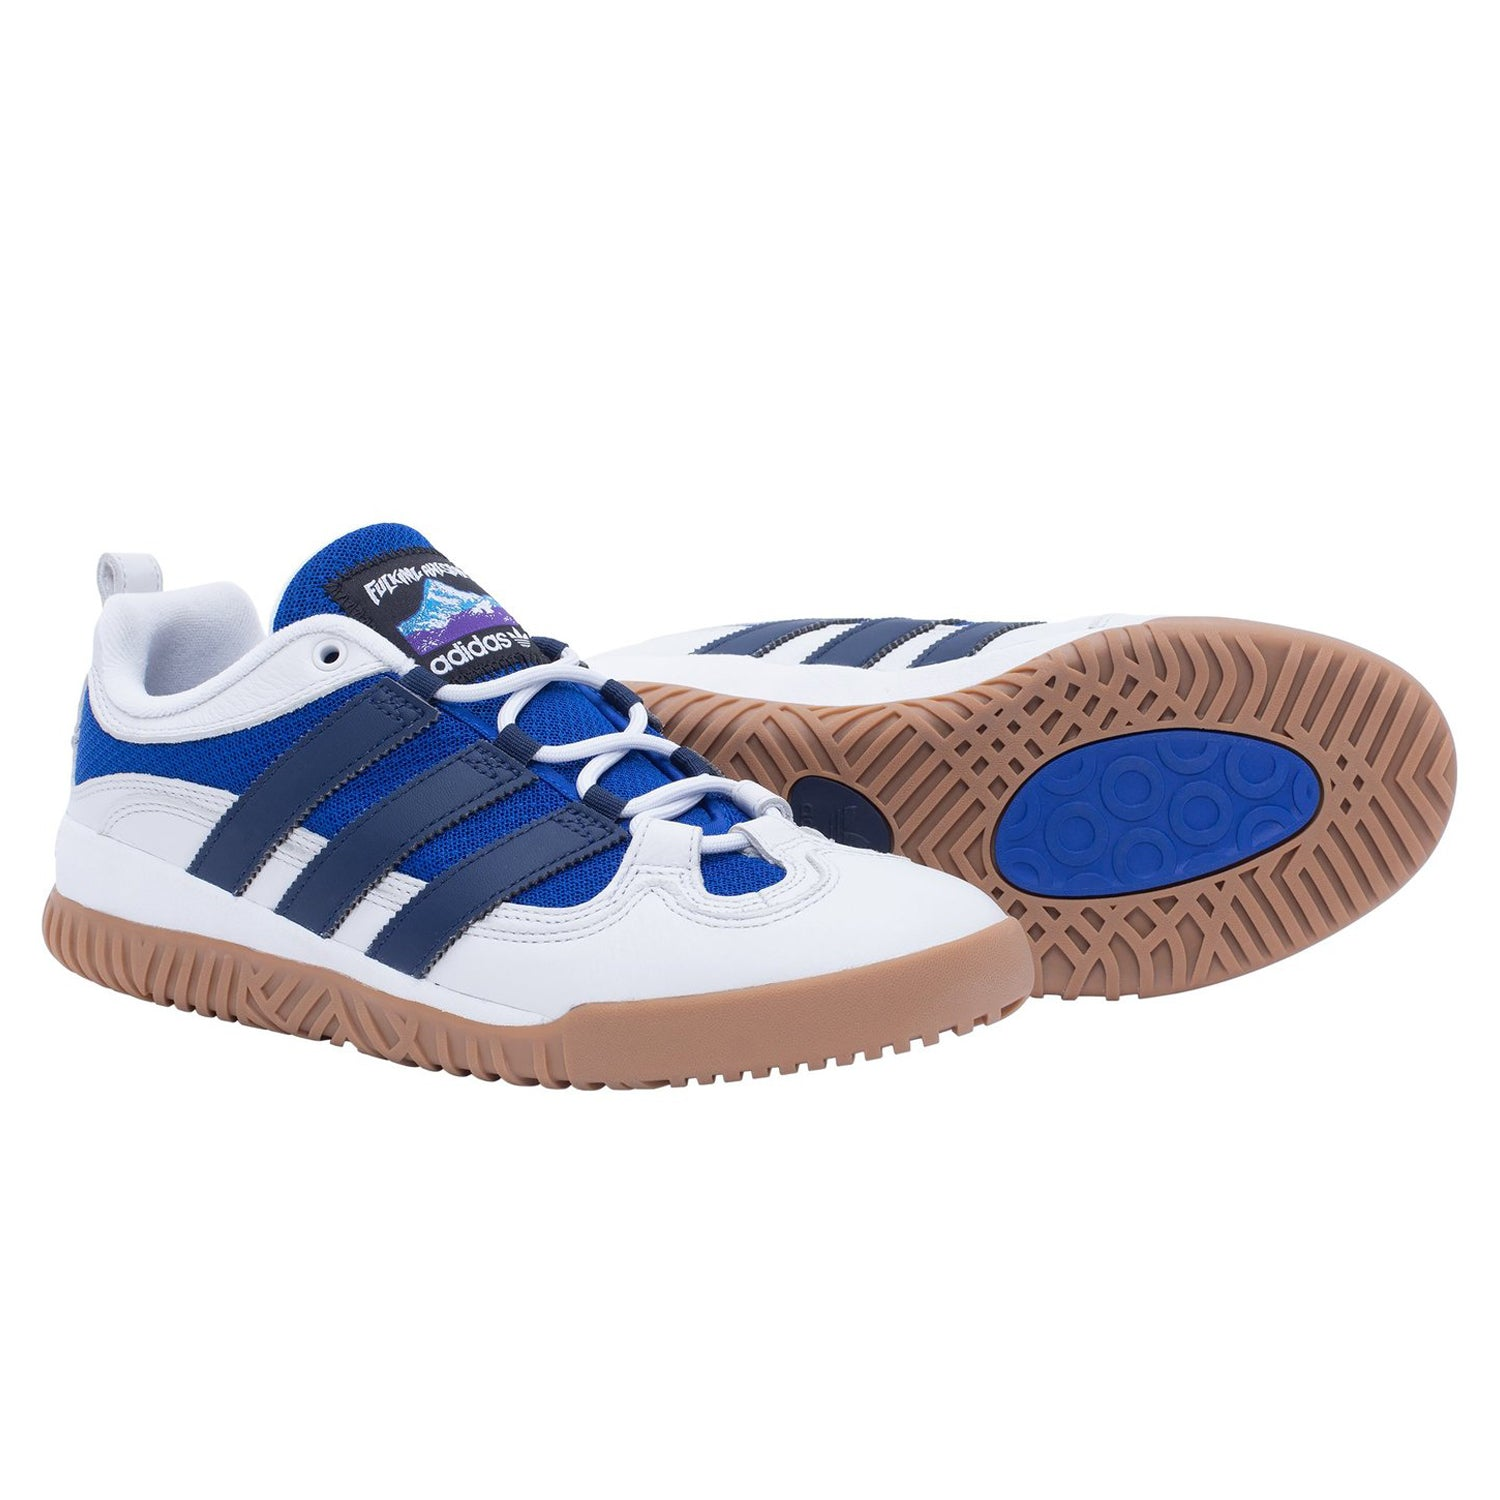 Adidas FA Experiment 1 Shoes Crystal White/Collegiate Navy